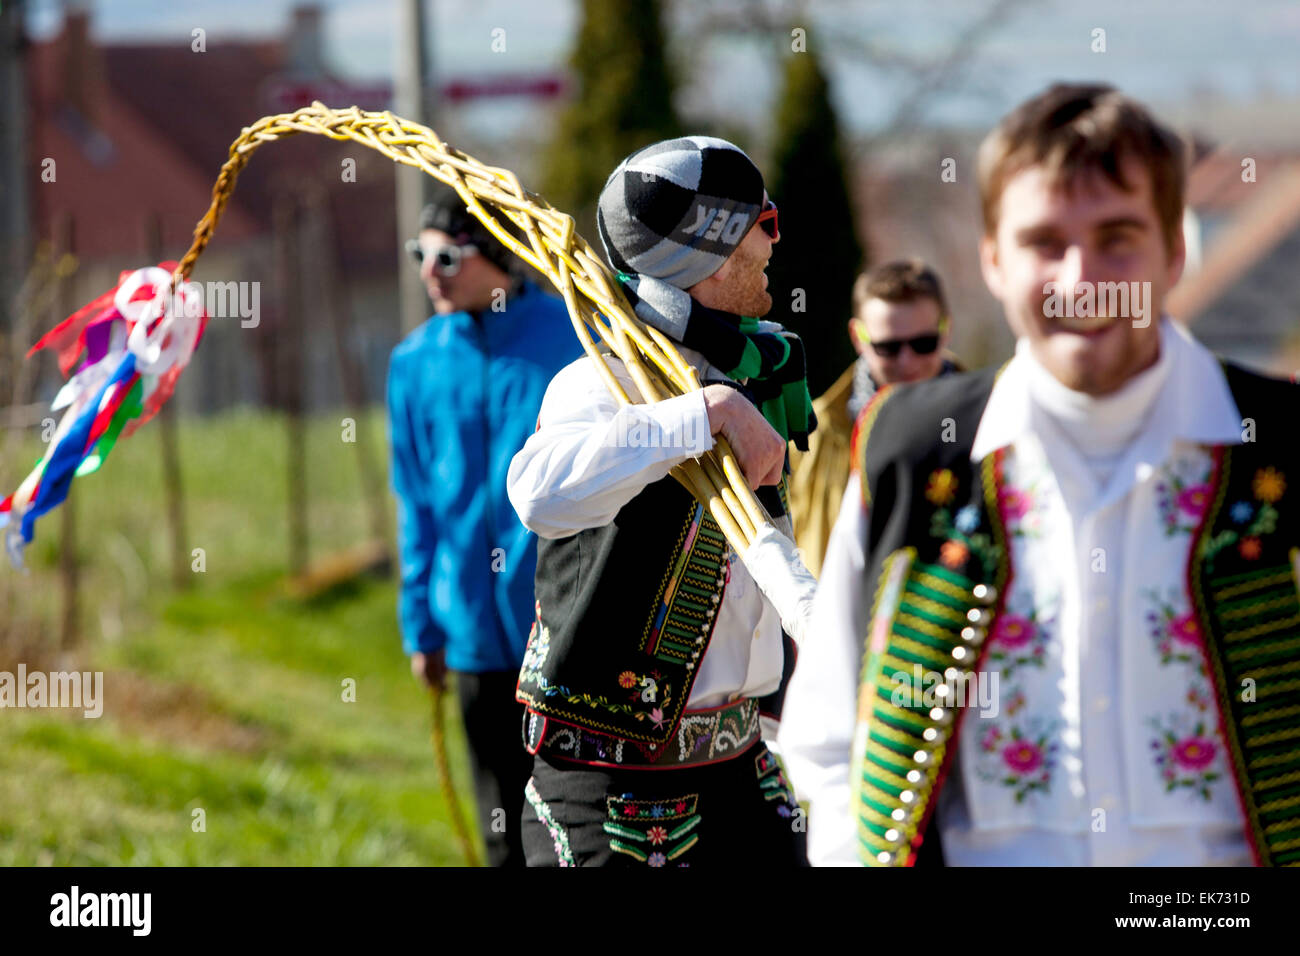 Easter Monday - young boys passes through the village with a whip and whipping girls, Sakvice, Southern Moravia, Stock Photo